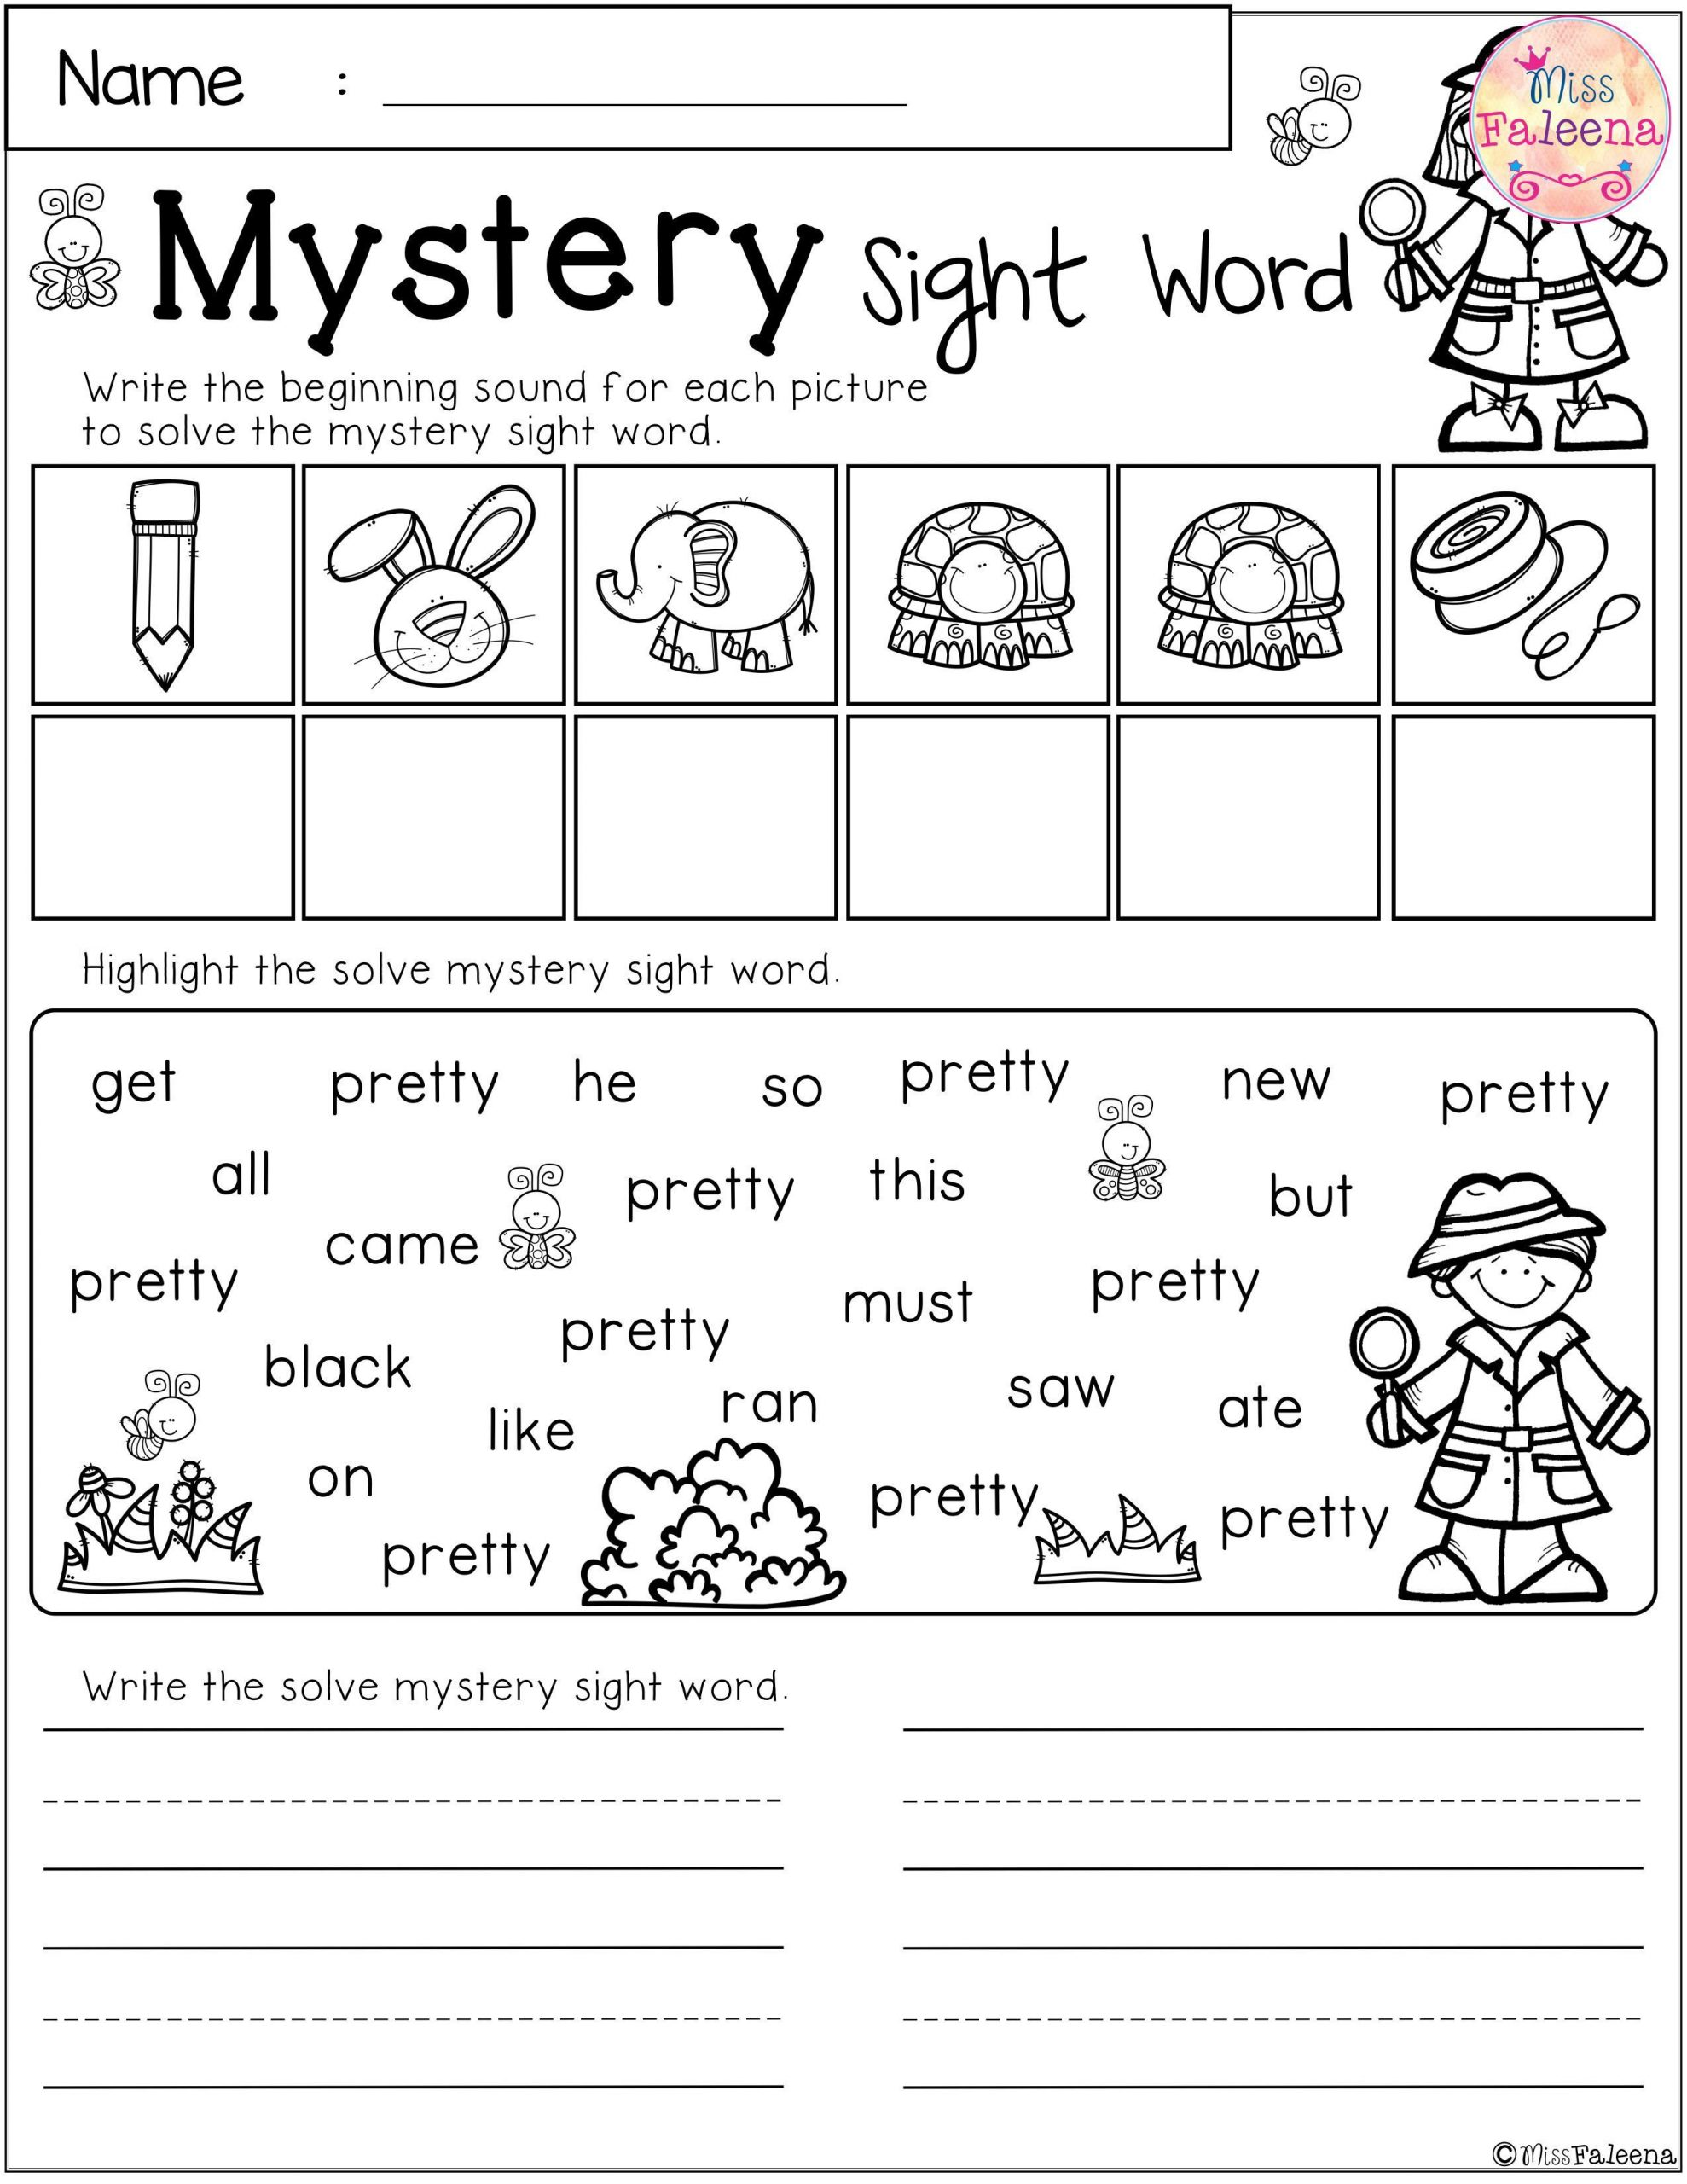 Second Grade Sight Words Worksheets there are 10 Pages Of Mystery Sight Word Practice Worksheets